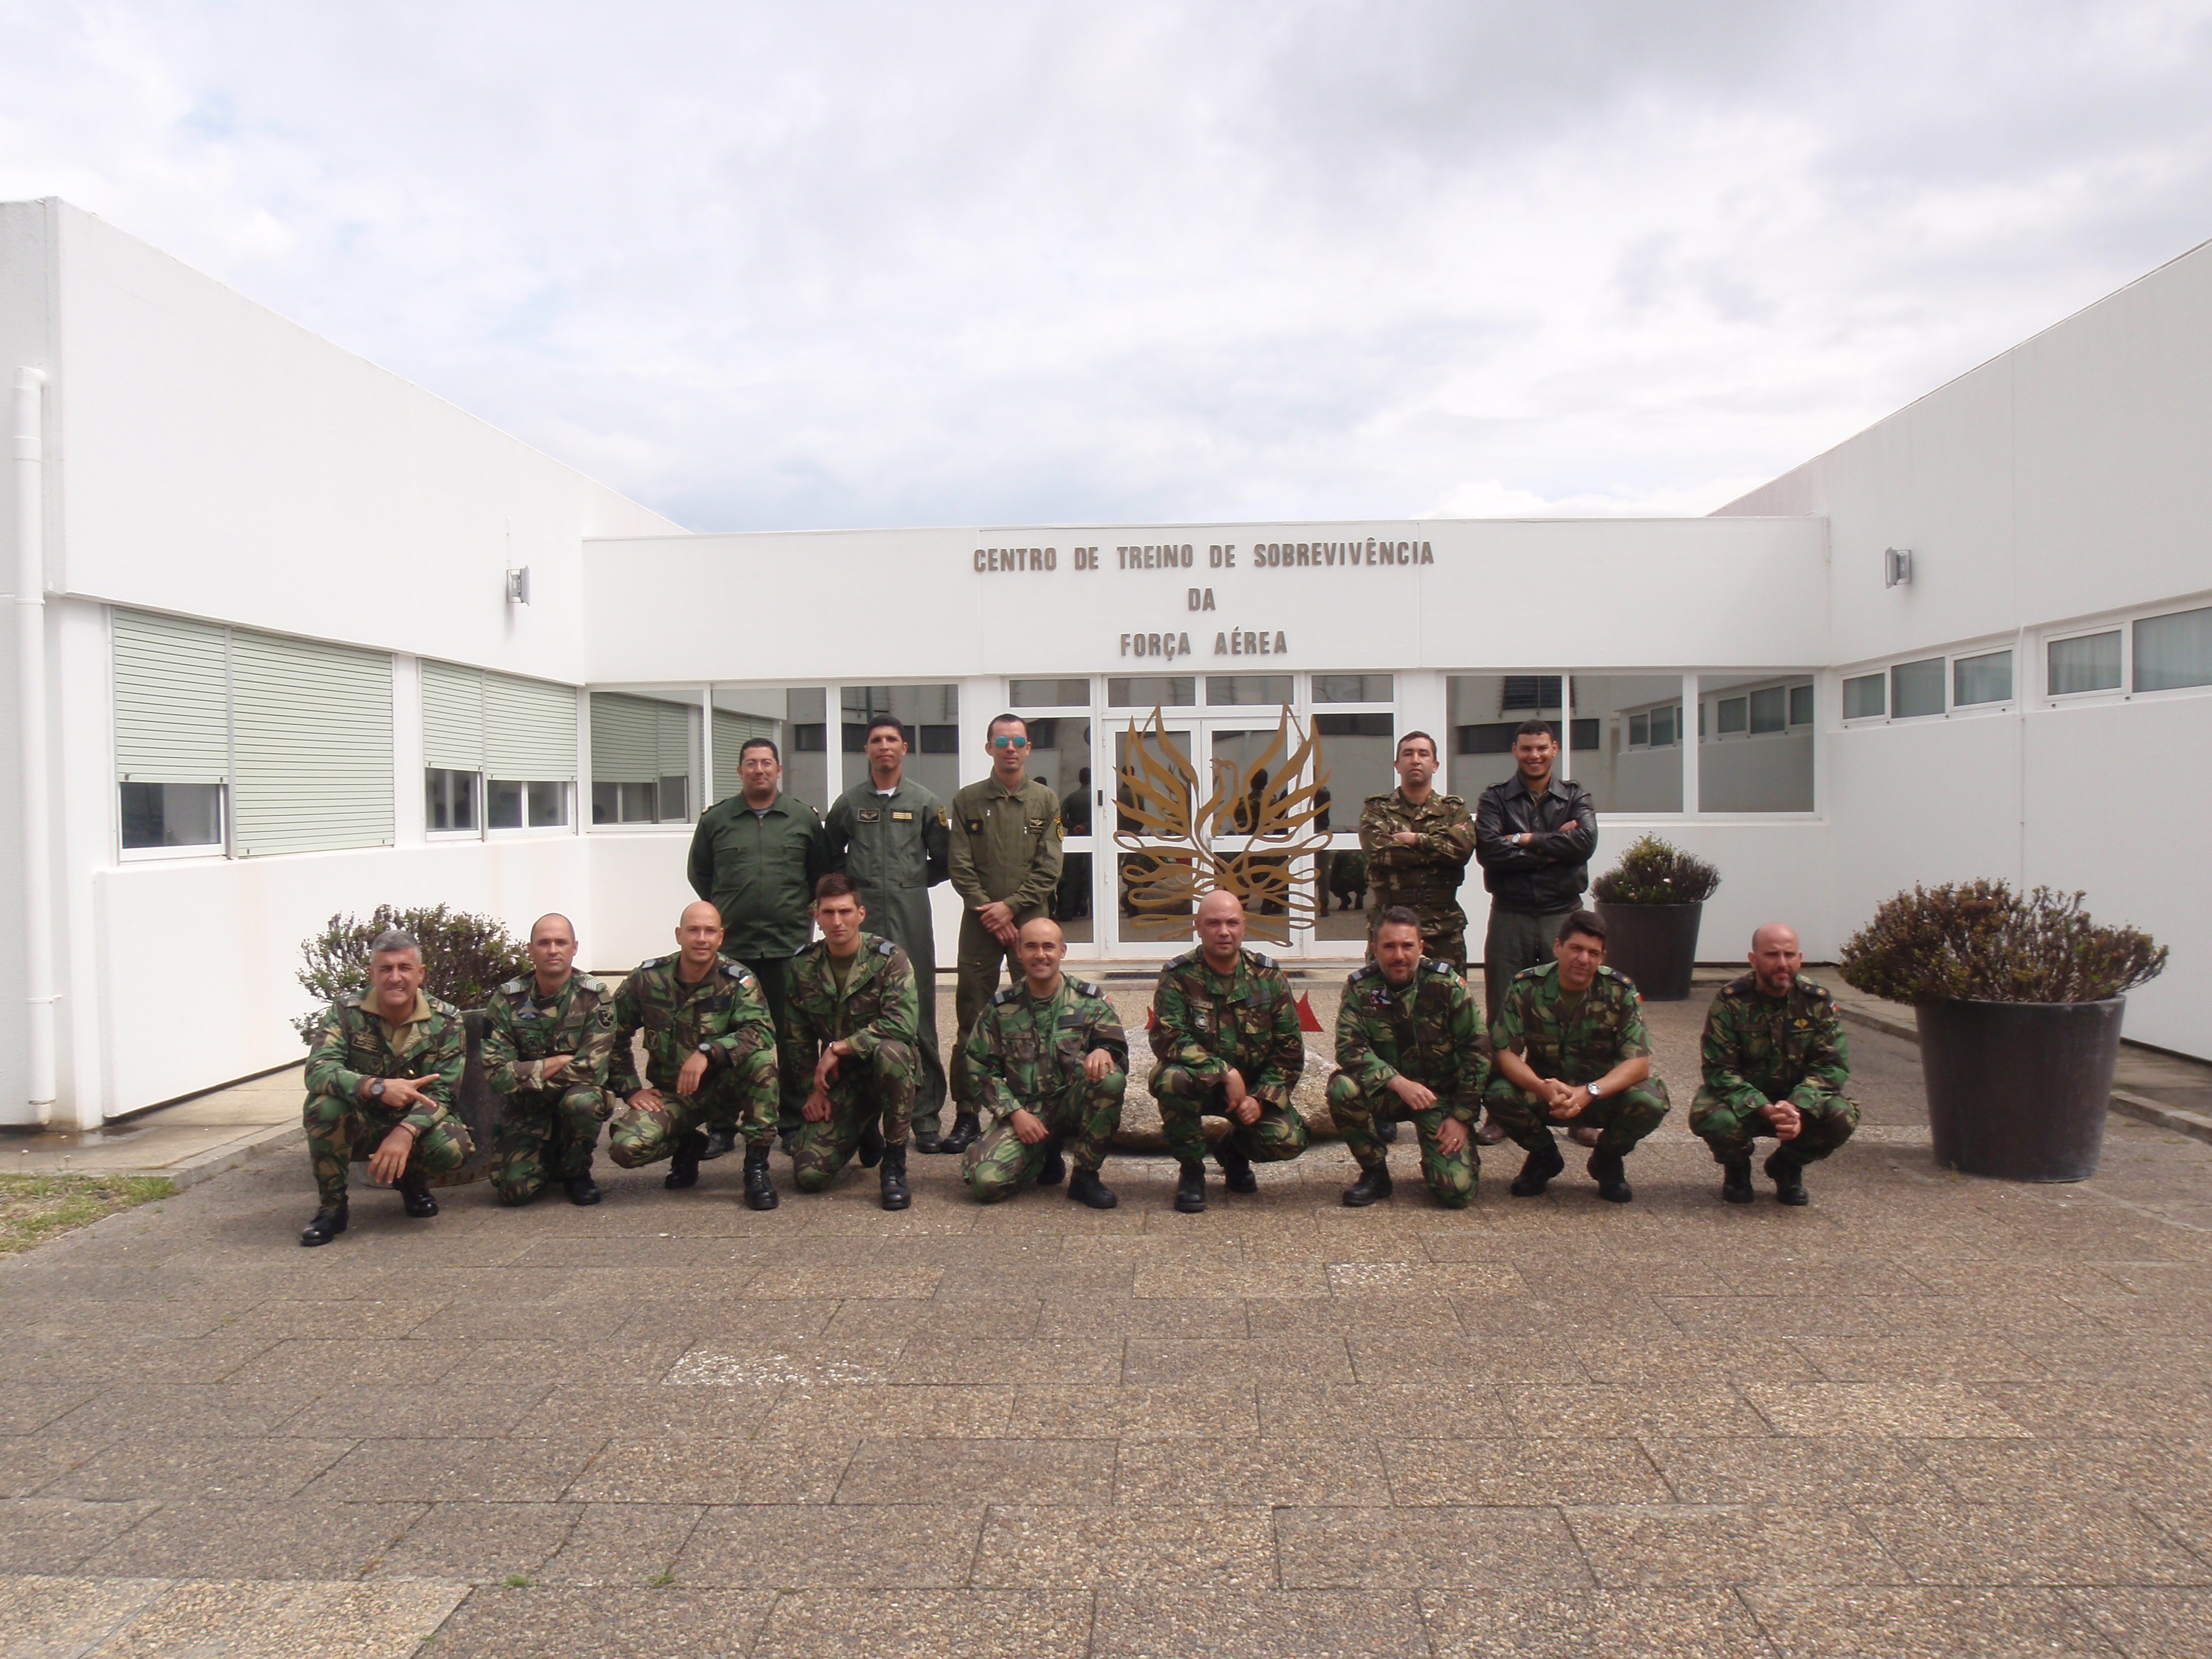 Coopération militaire maroco-portugaise - Page 2 160614055359266061